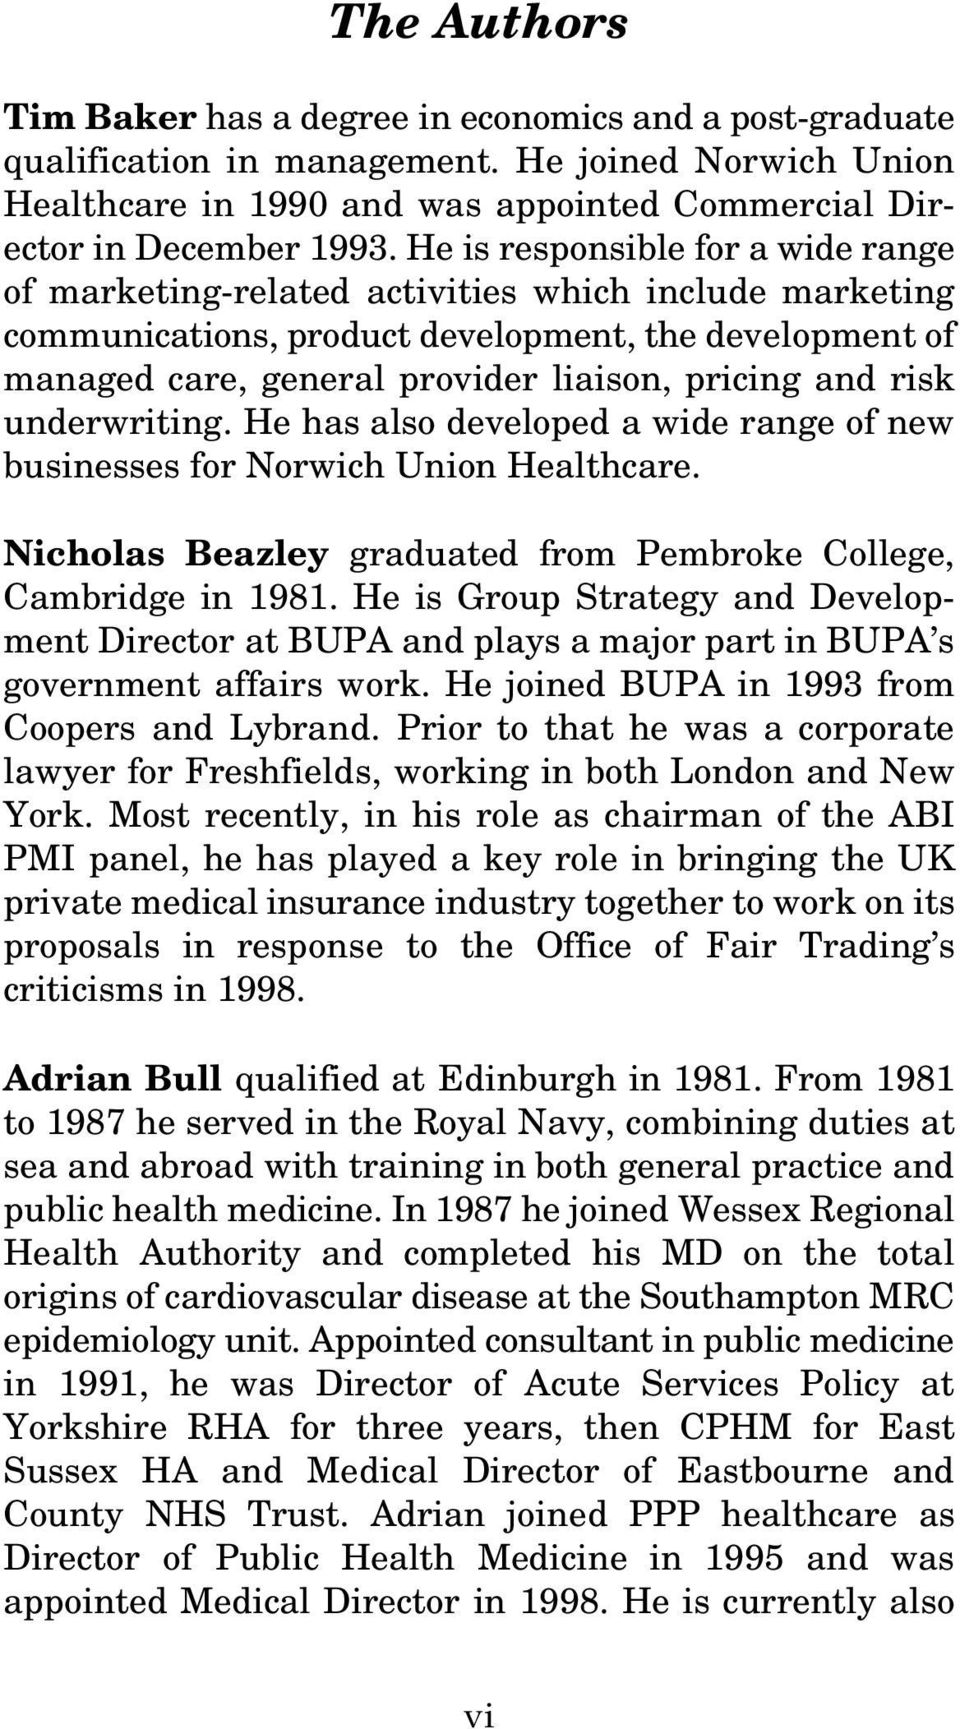 risk underwriting. He has also developed a wide range of new businesses for Norwich Union Healthcare. Nicholas Beazley graduated from Pembroke College, Cambridge in 1981.